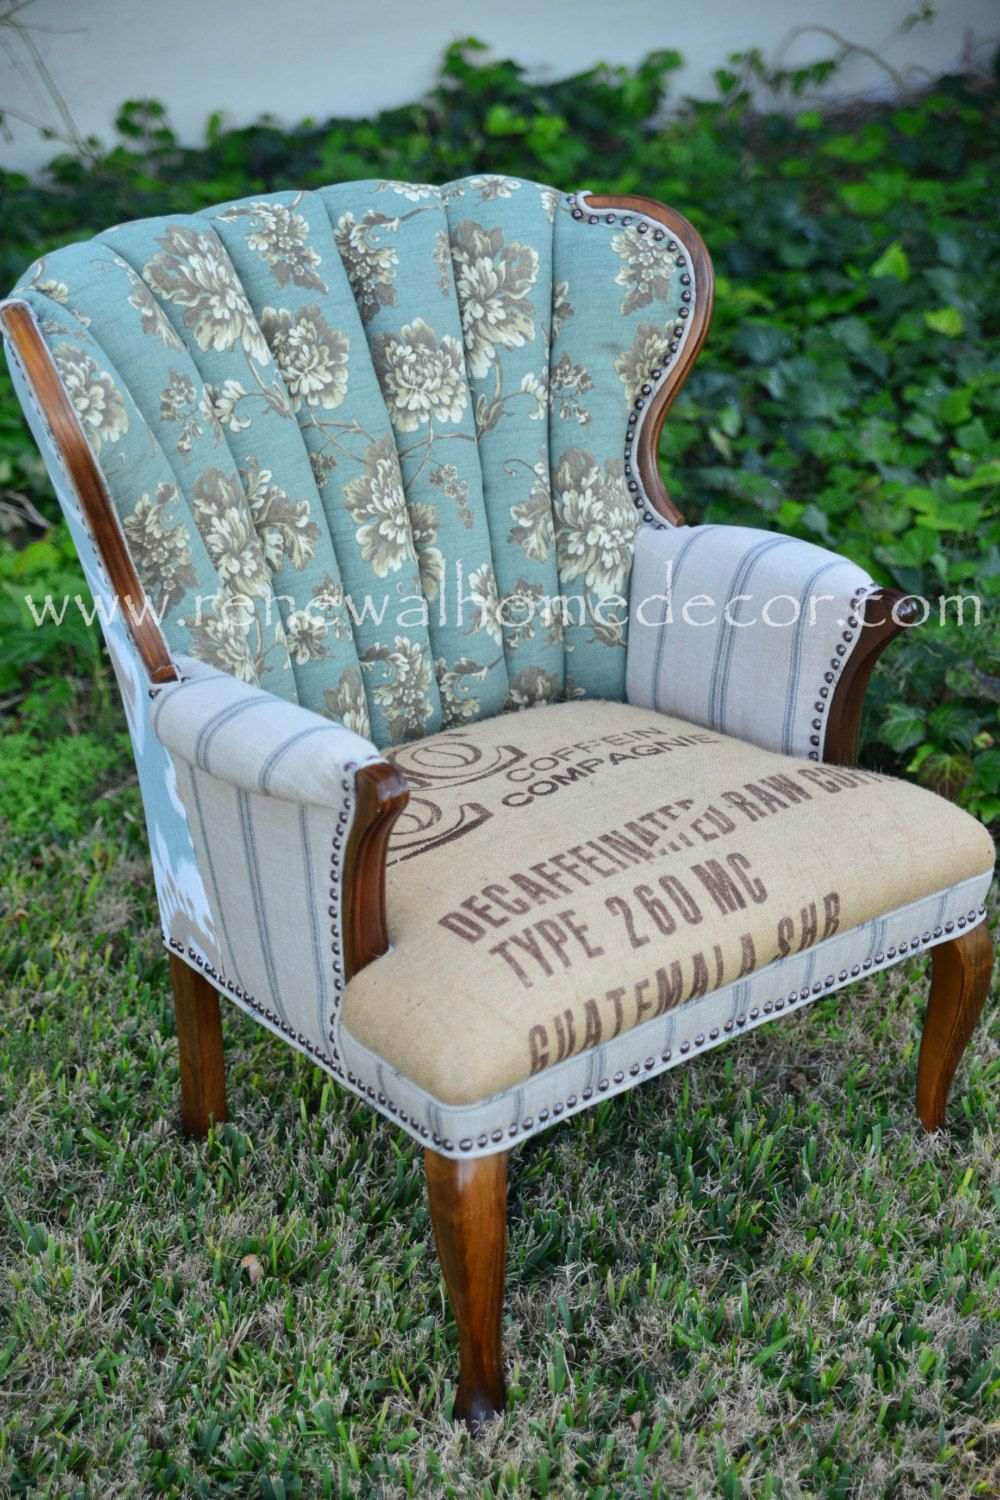 A good chair gone bad reupholster pinterest chair accent